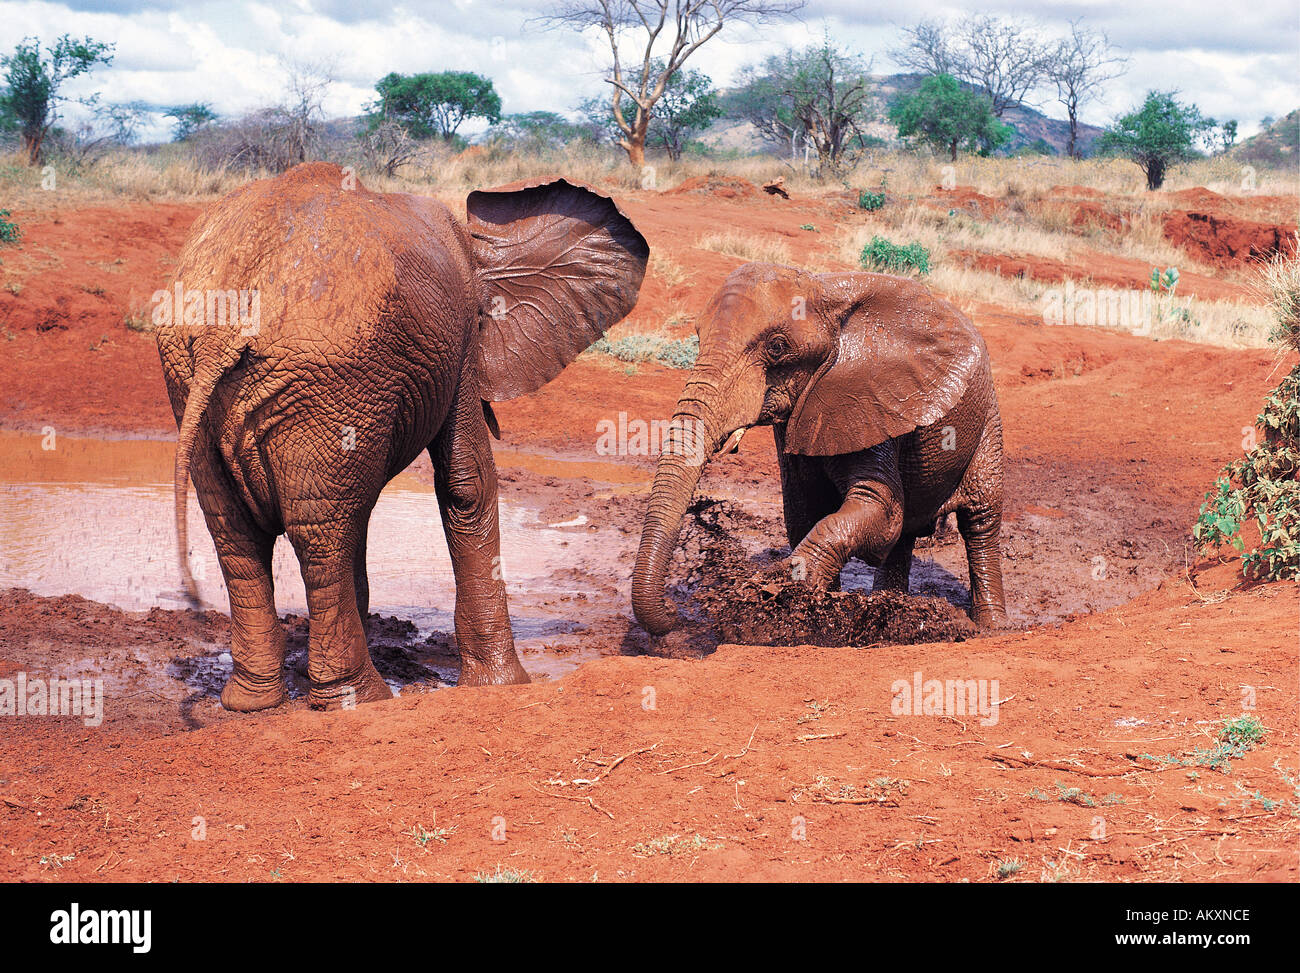 Two elephants taking a mud bath Tsavo East National Park Kenya East Africa - Stock Image